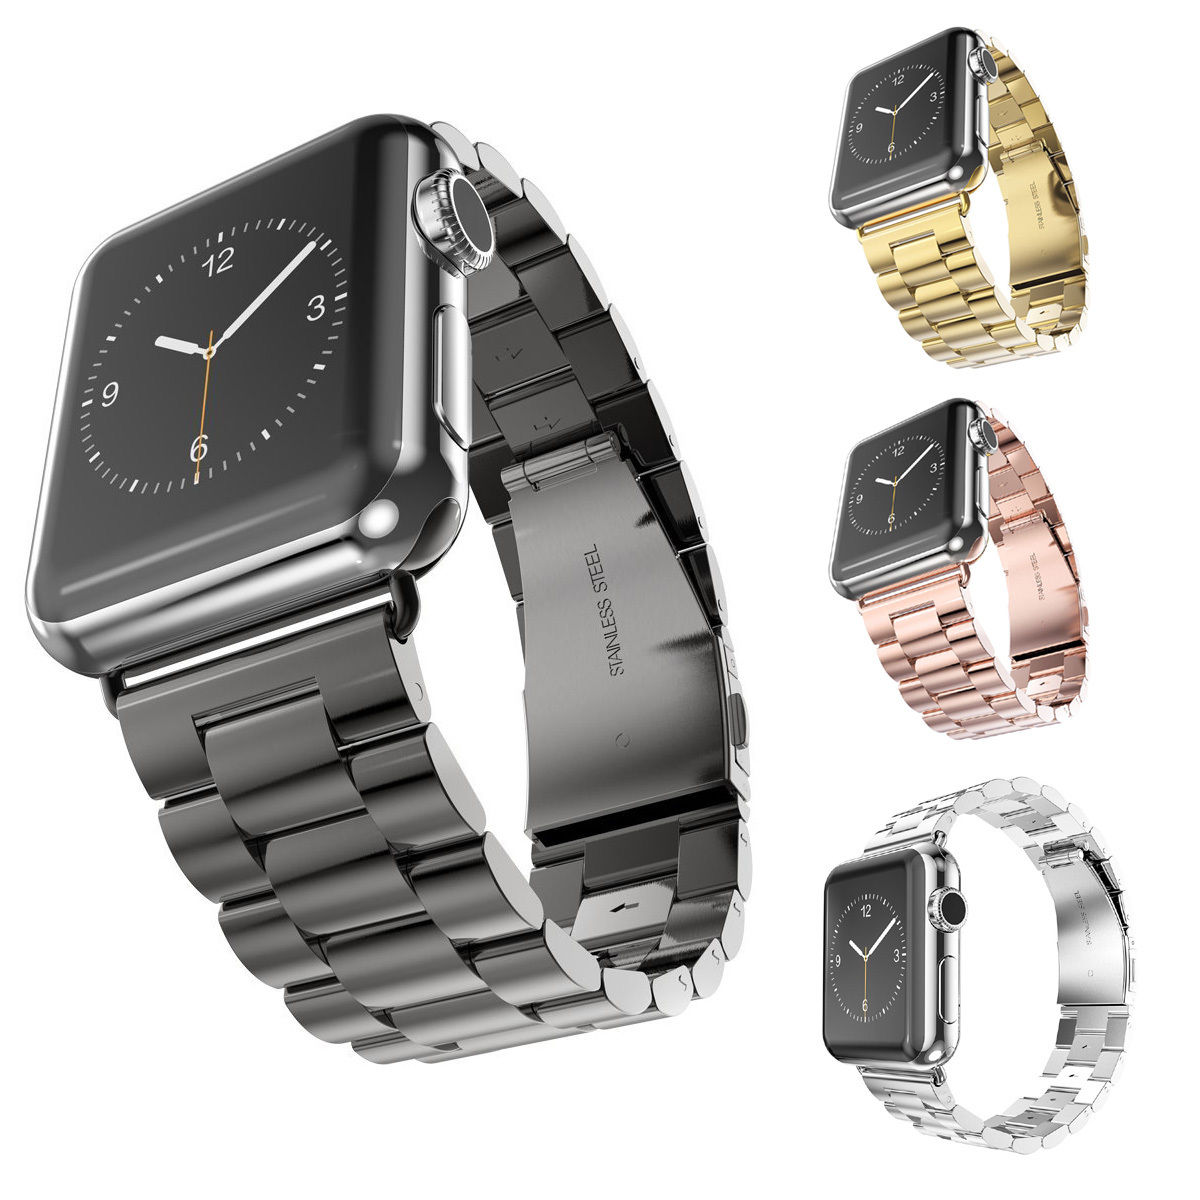 Stainless Steel Watch Band For iWatch Apple Watch Band Series 1 2 3 Strap Link Bracelet 38mm 42mm Classical Lock with Adapter for stainless steel strap classic buckle adapter link bracelet watch band for apple watch